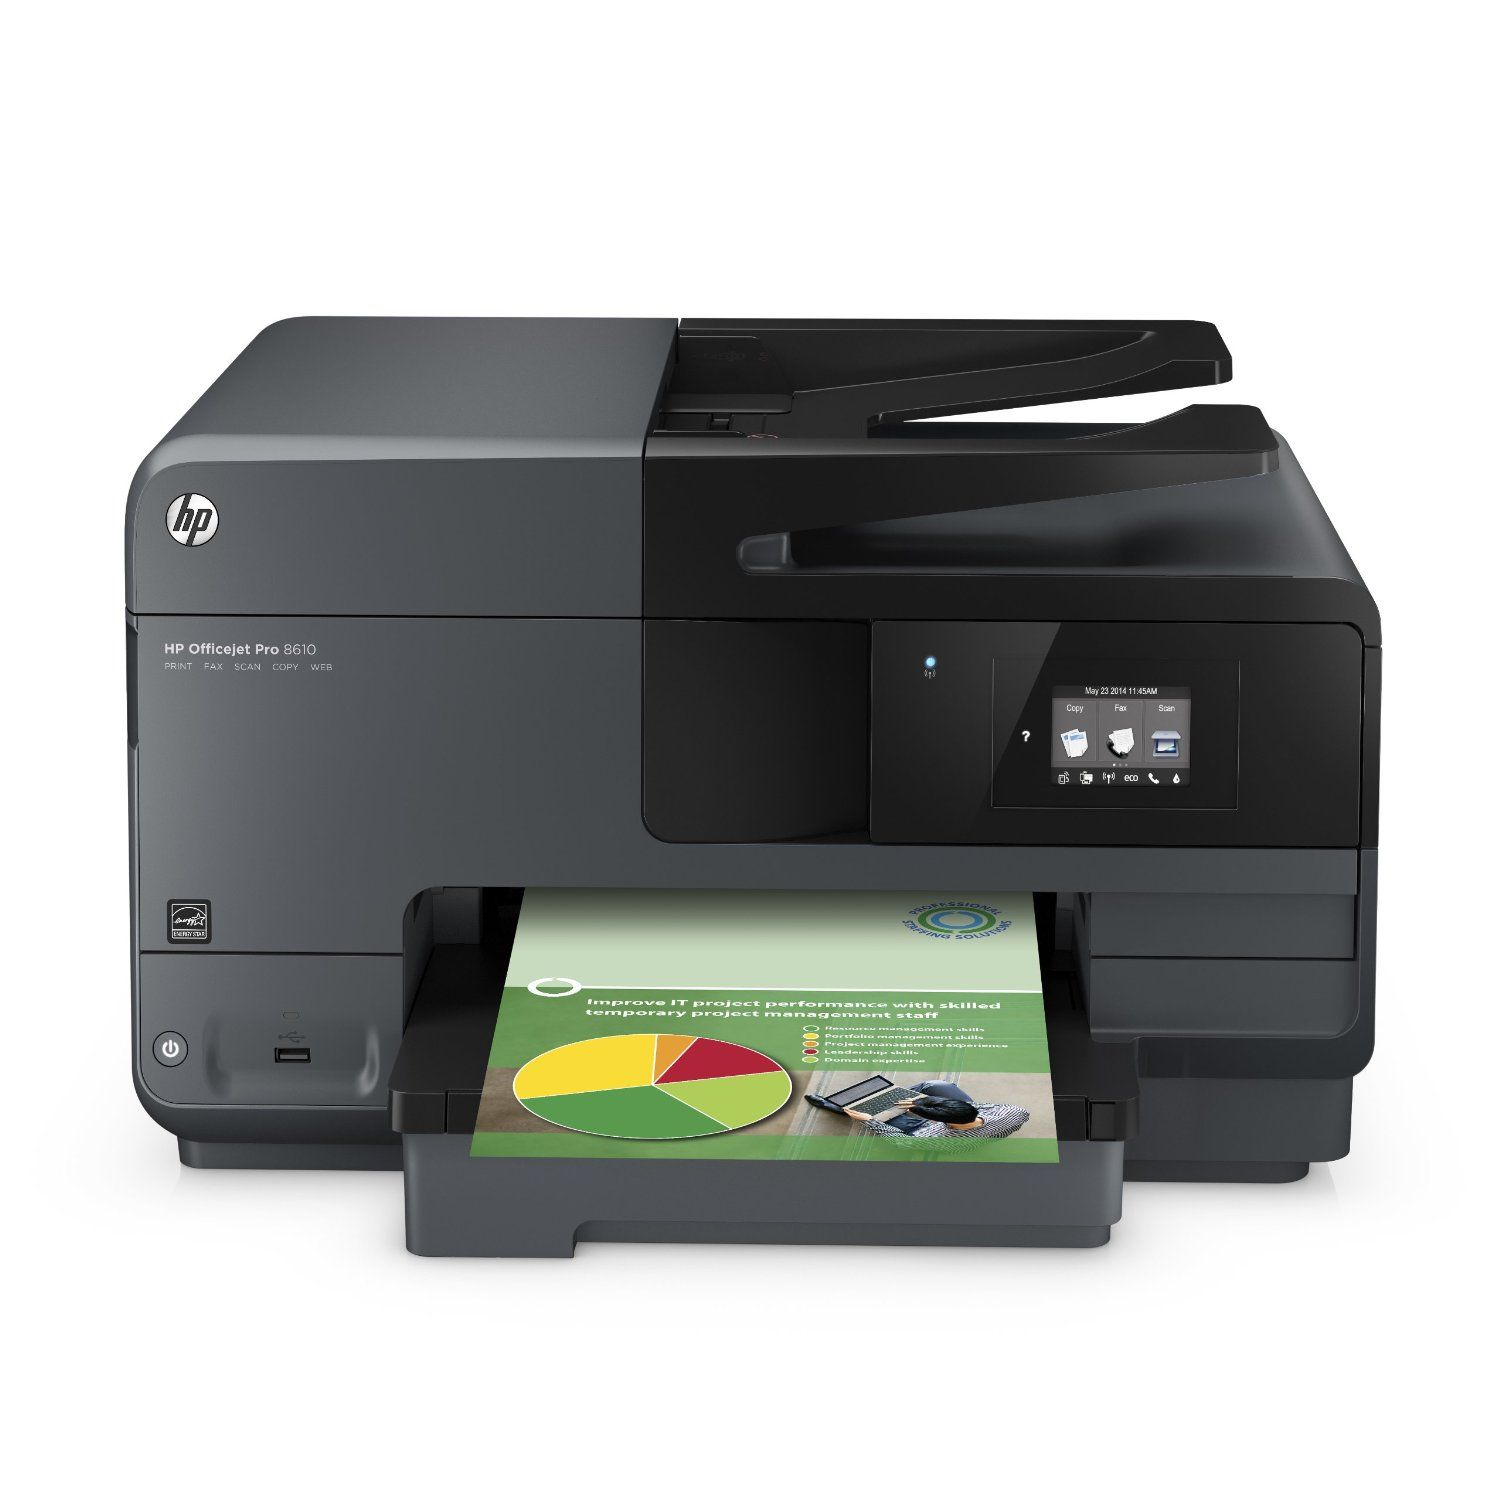 Wireless E All In One Printer Scanner Copier Fax Reliable Color Printing Is Made Easy With A Monthly Duty Cycle Of Up To 30000 Pages At Office Depot